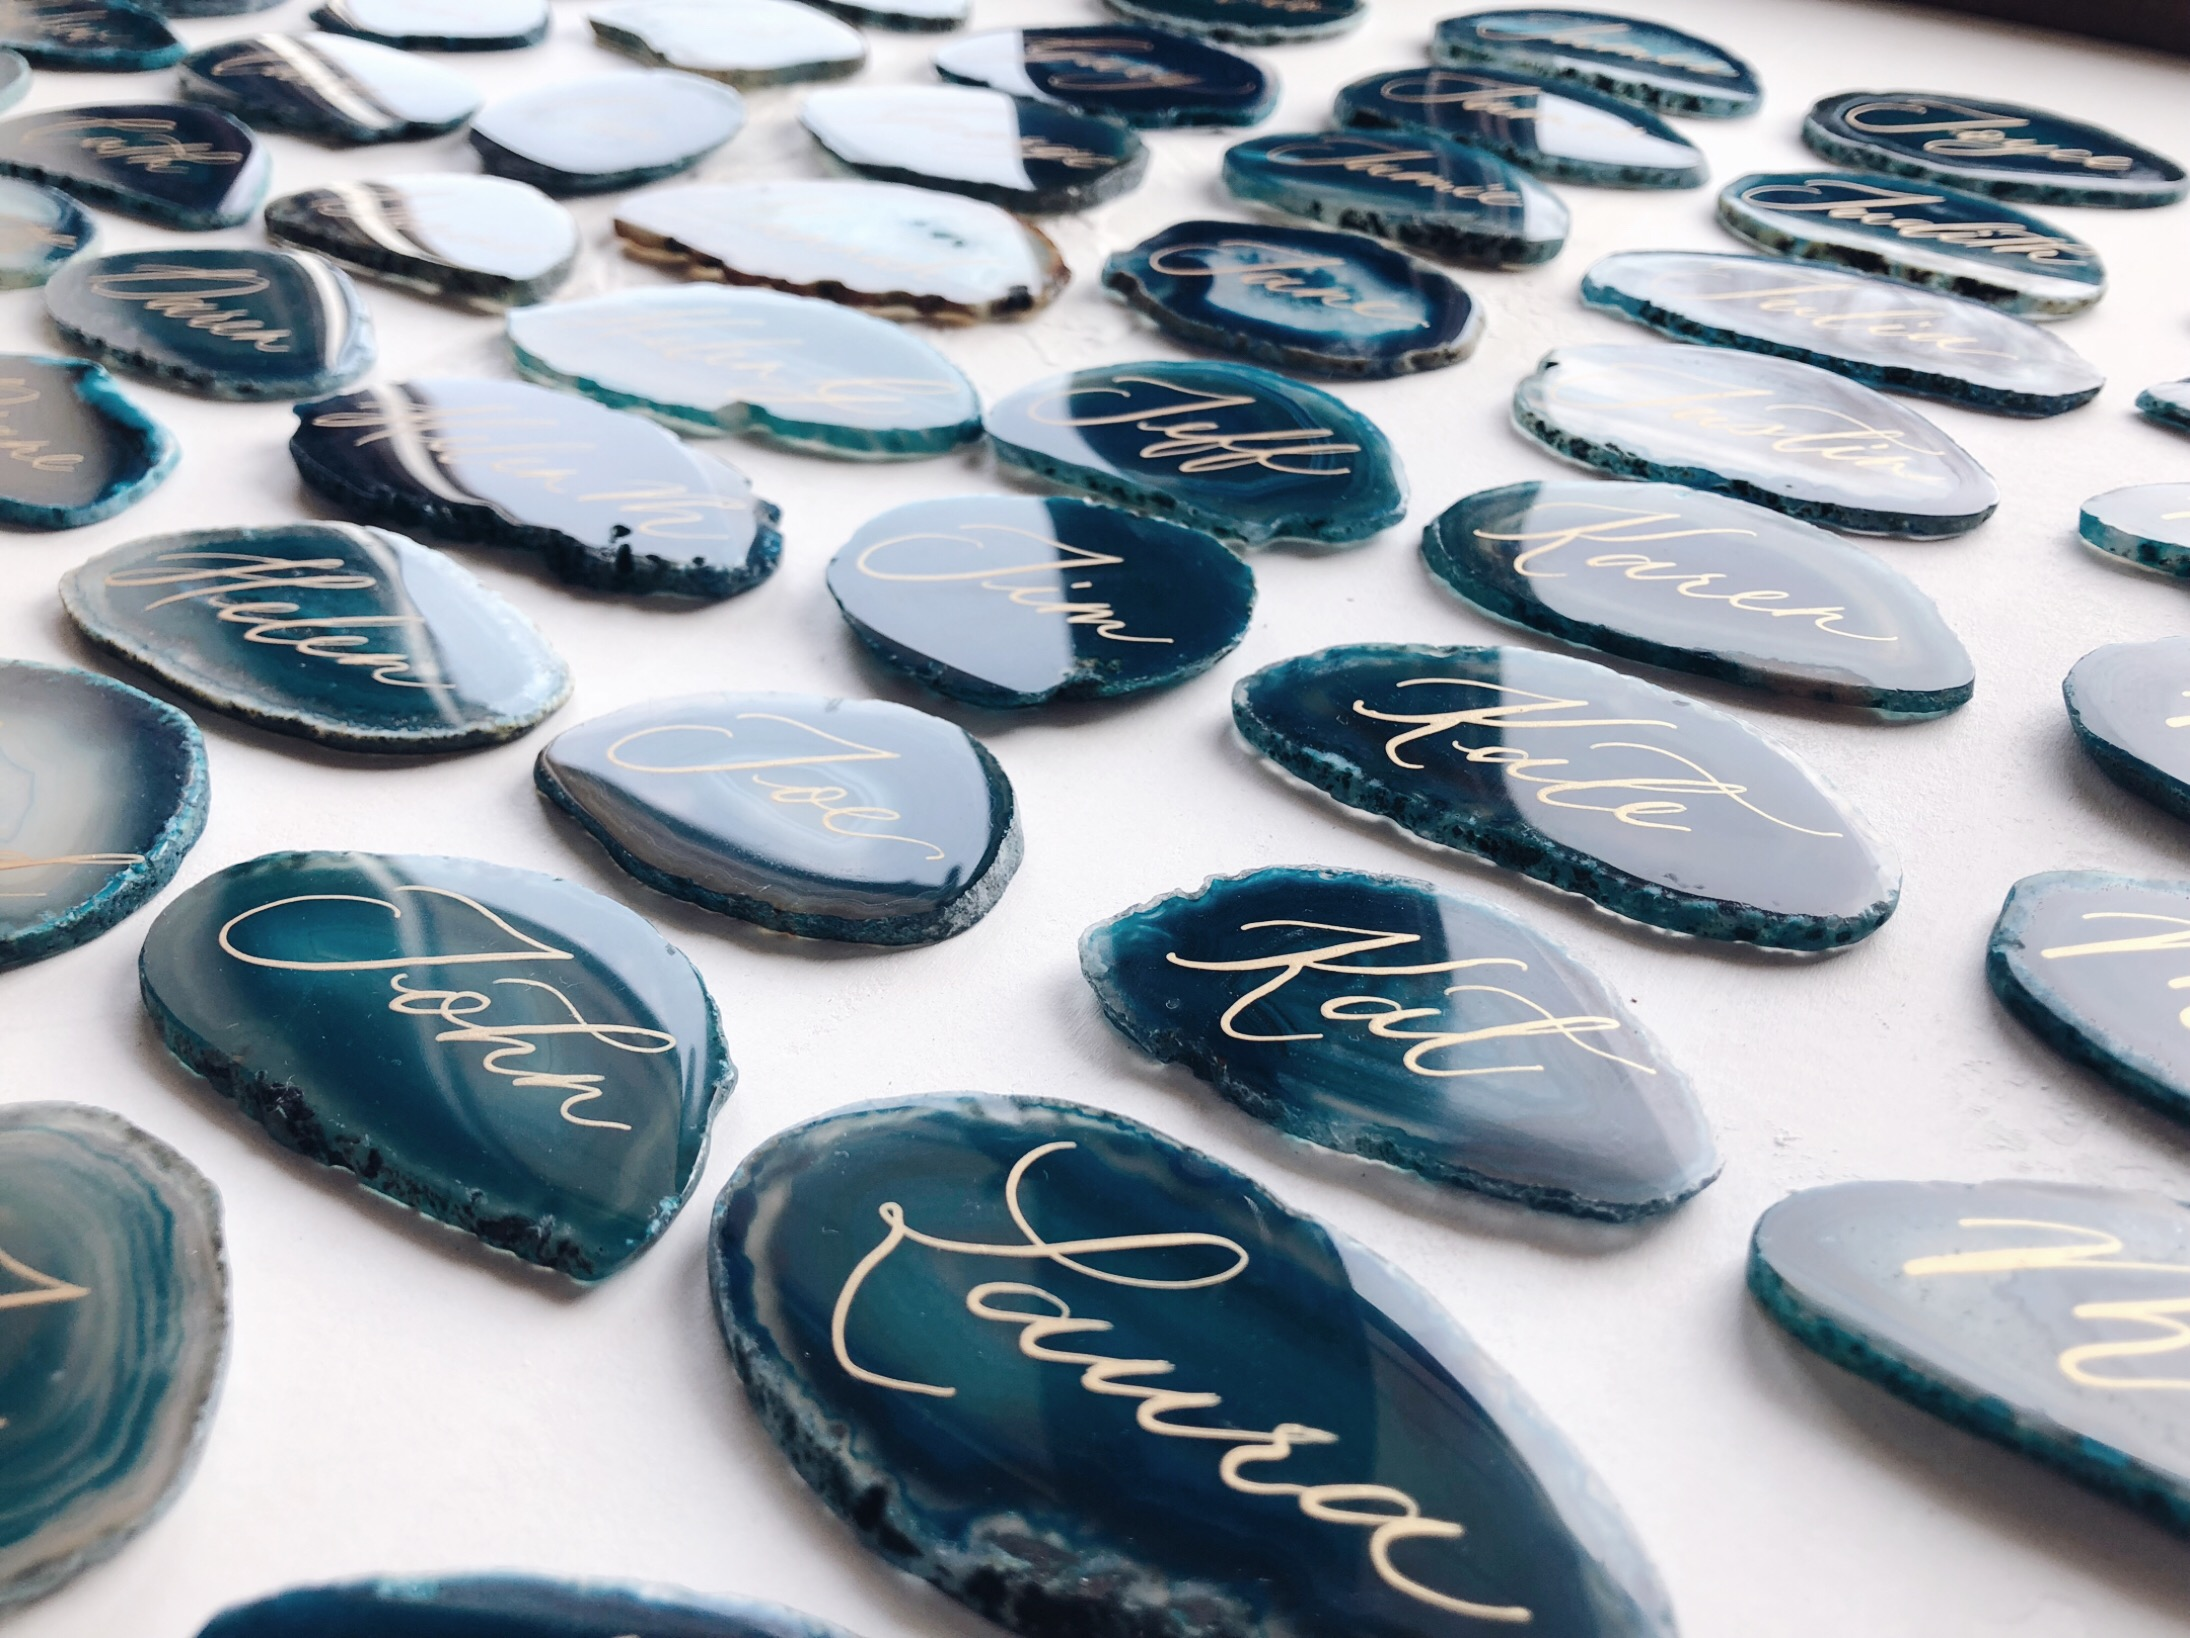 Teal agate with gold calligraphy